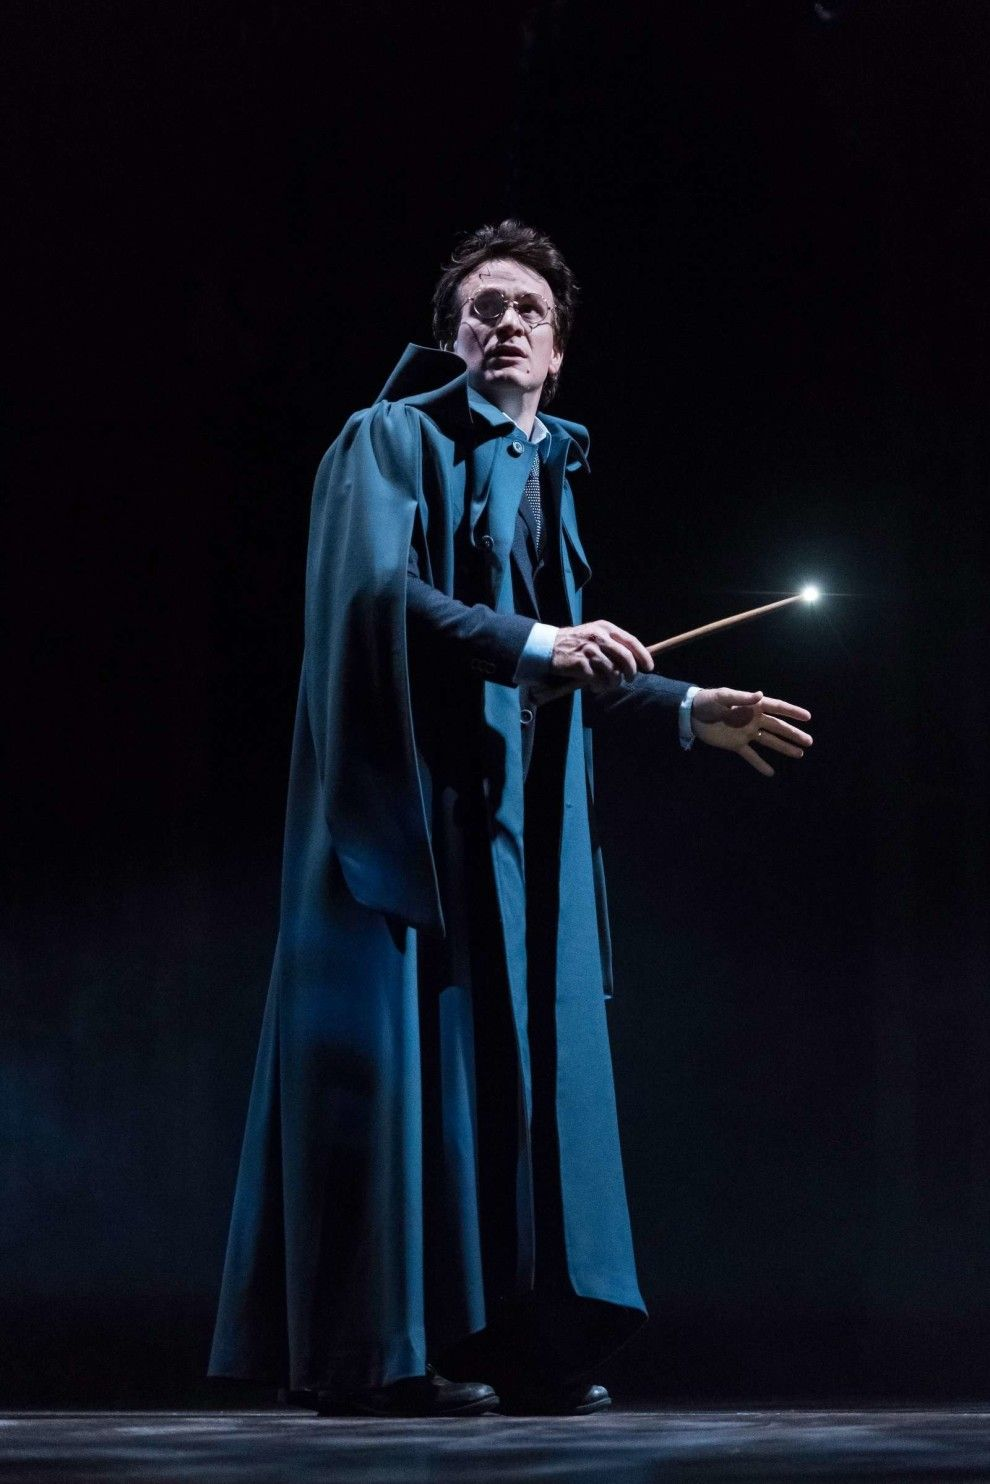 Harry Potter And The Cursed Child Photos Are Here And They Re So Magical Harry Potter Play Harry Potter Cursed Child Harry Potter